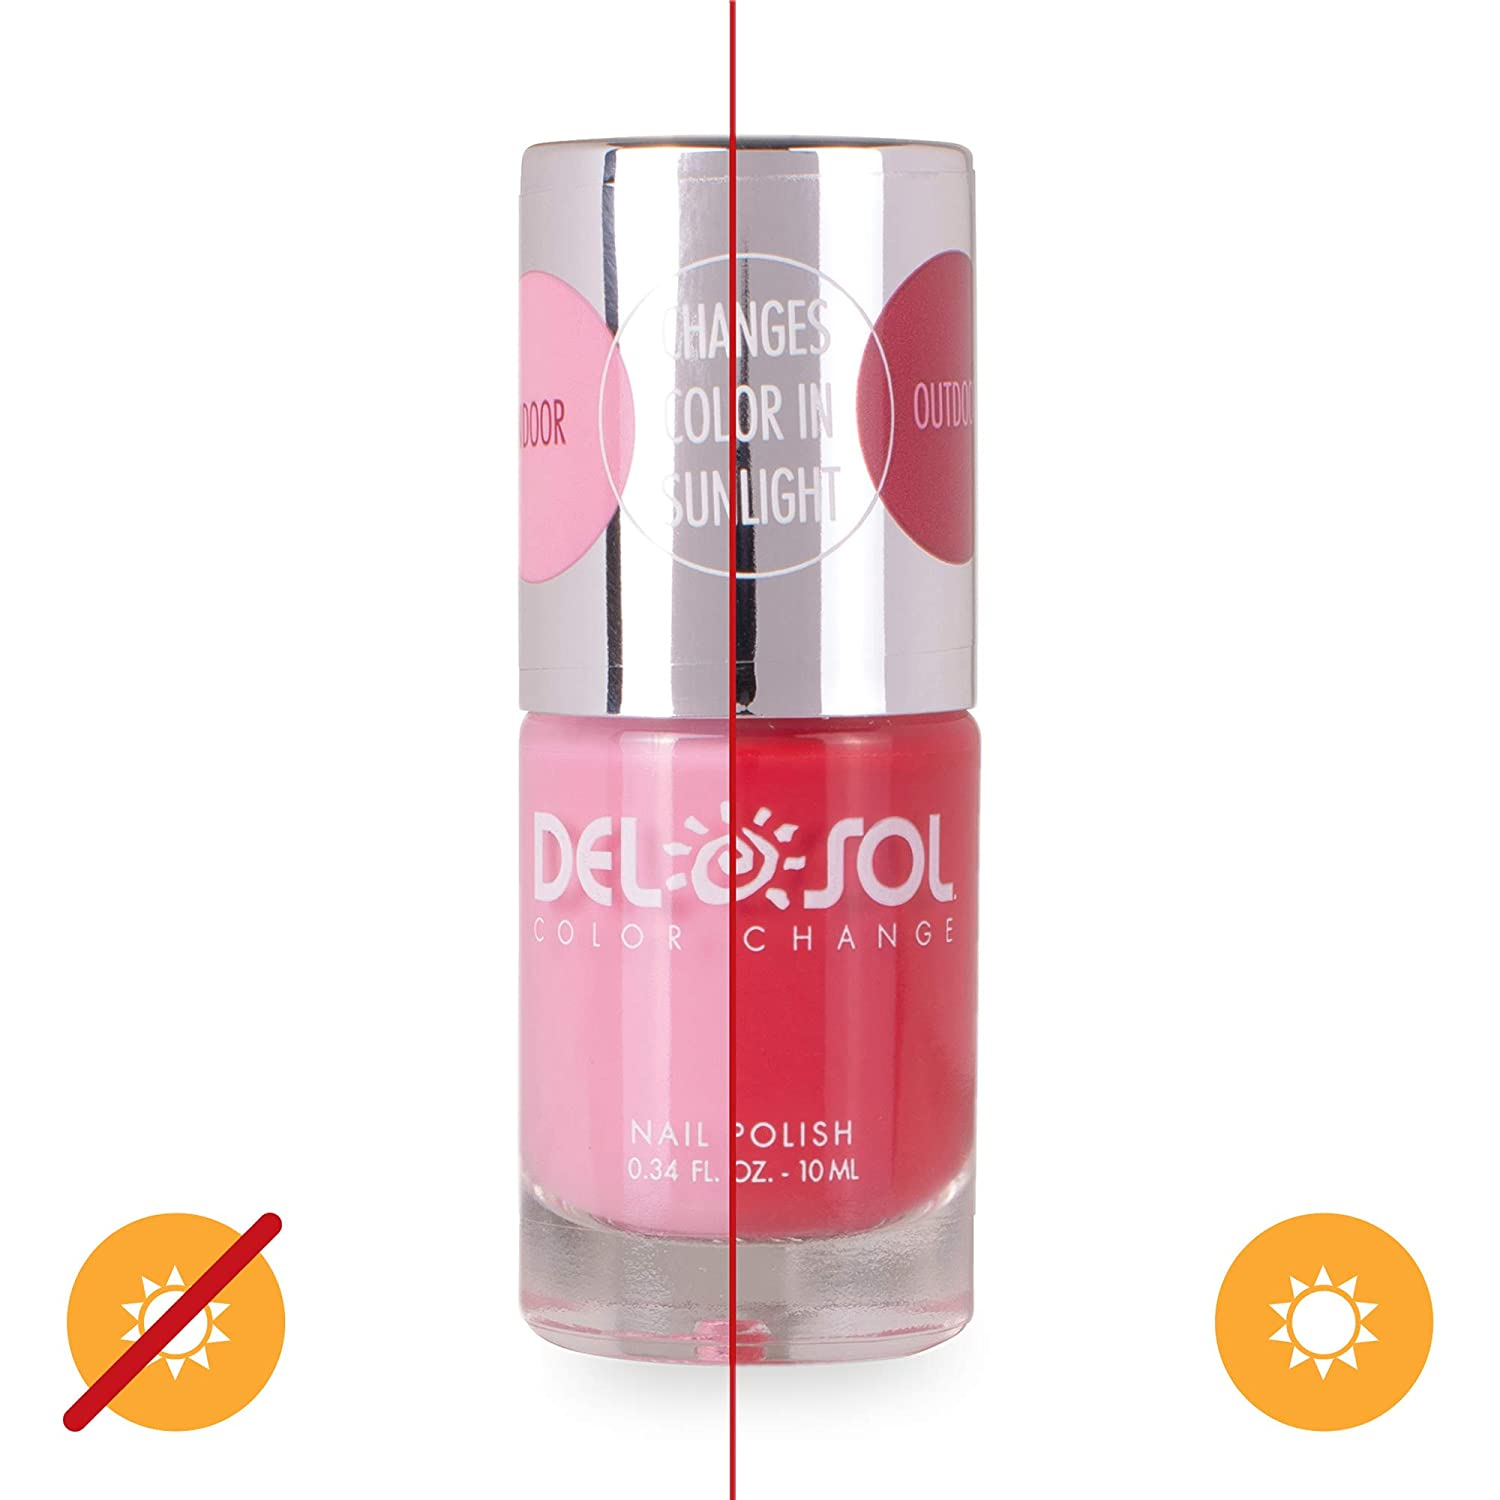 Del Sol Color-Changing Nail Polish - Drops of Jupiter - Changes Color from Pink to Red in the Sun - Quick dry, 5-Free Nail Lacquer - .34 fl oz/ 10mL